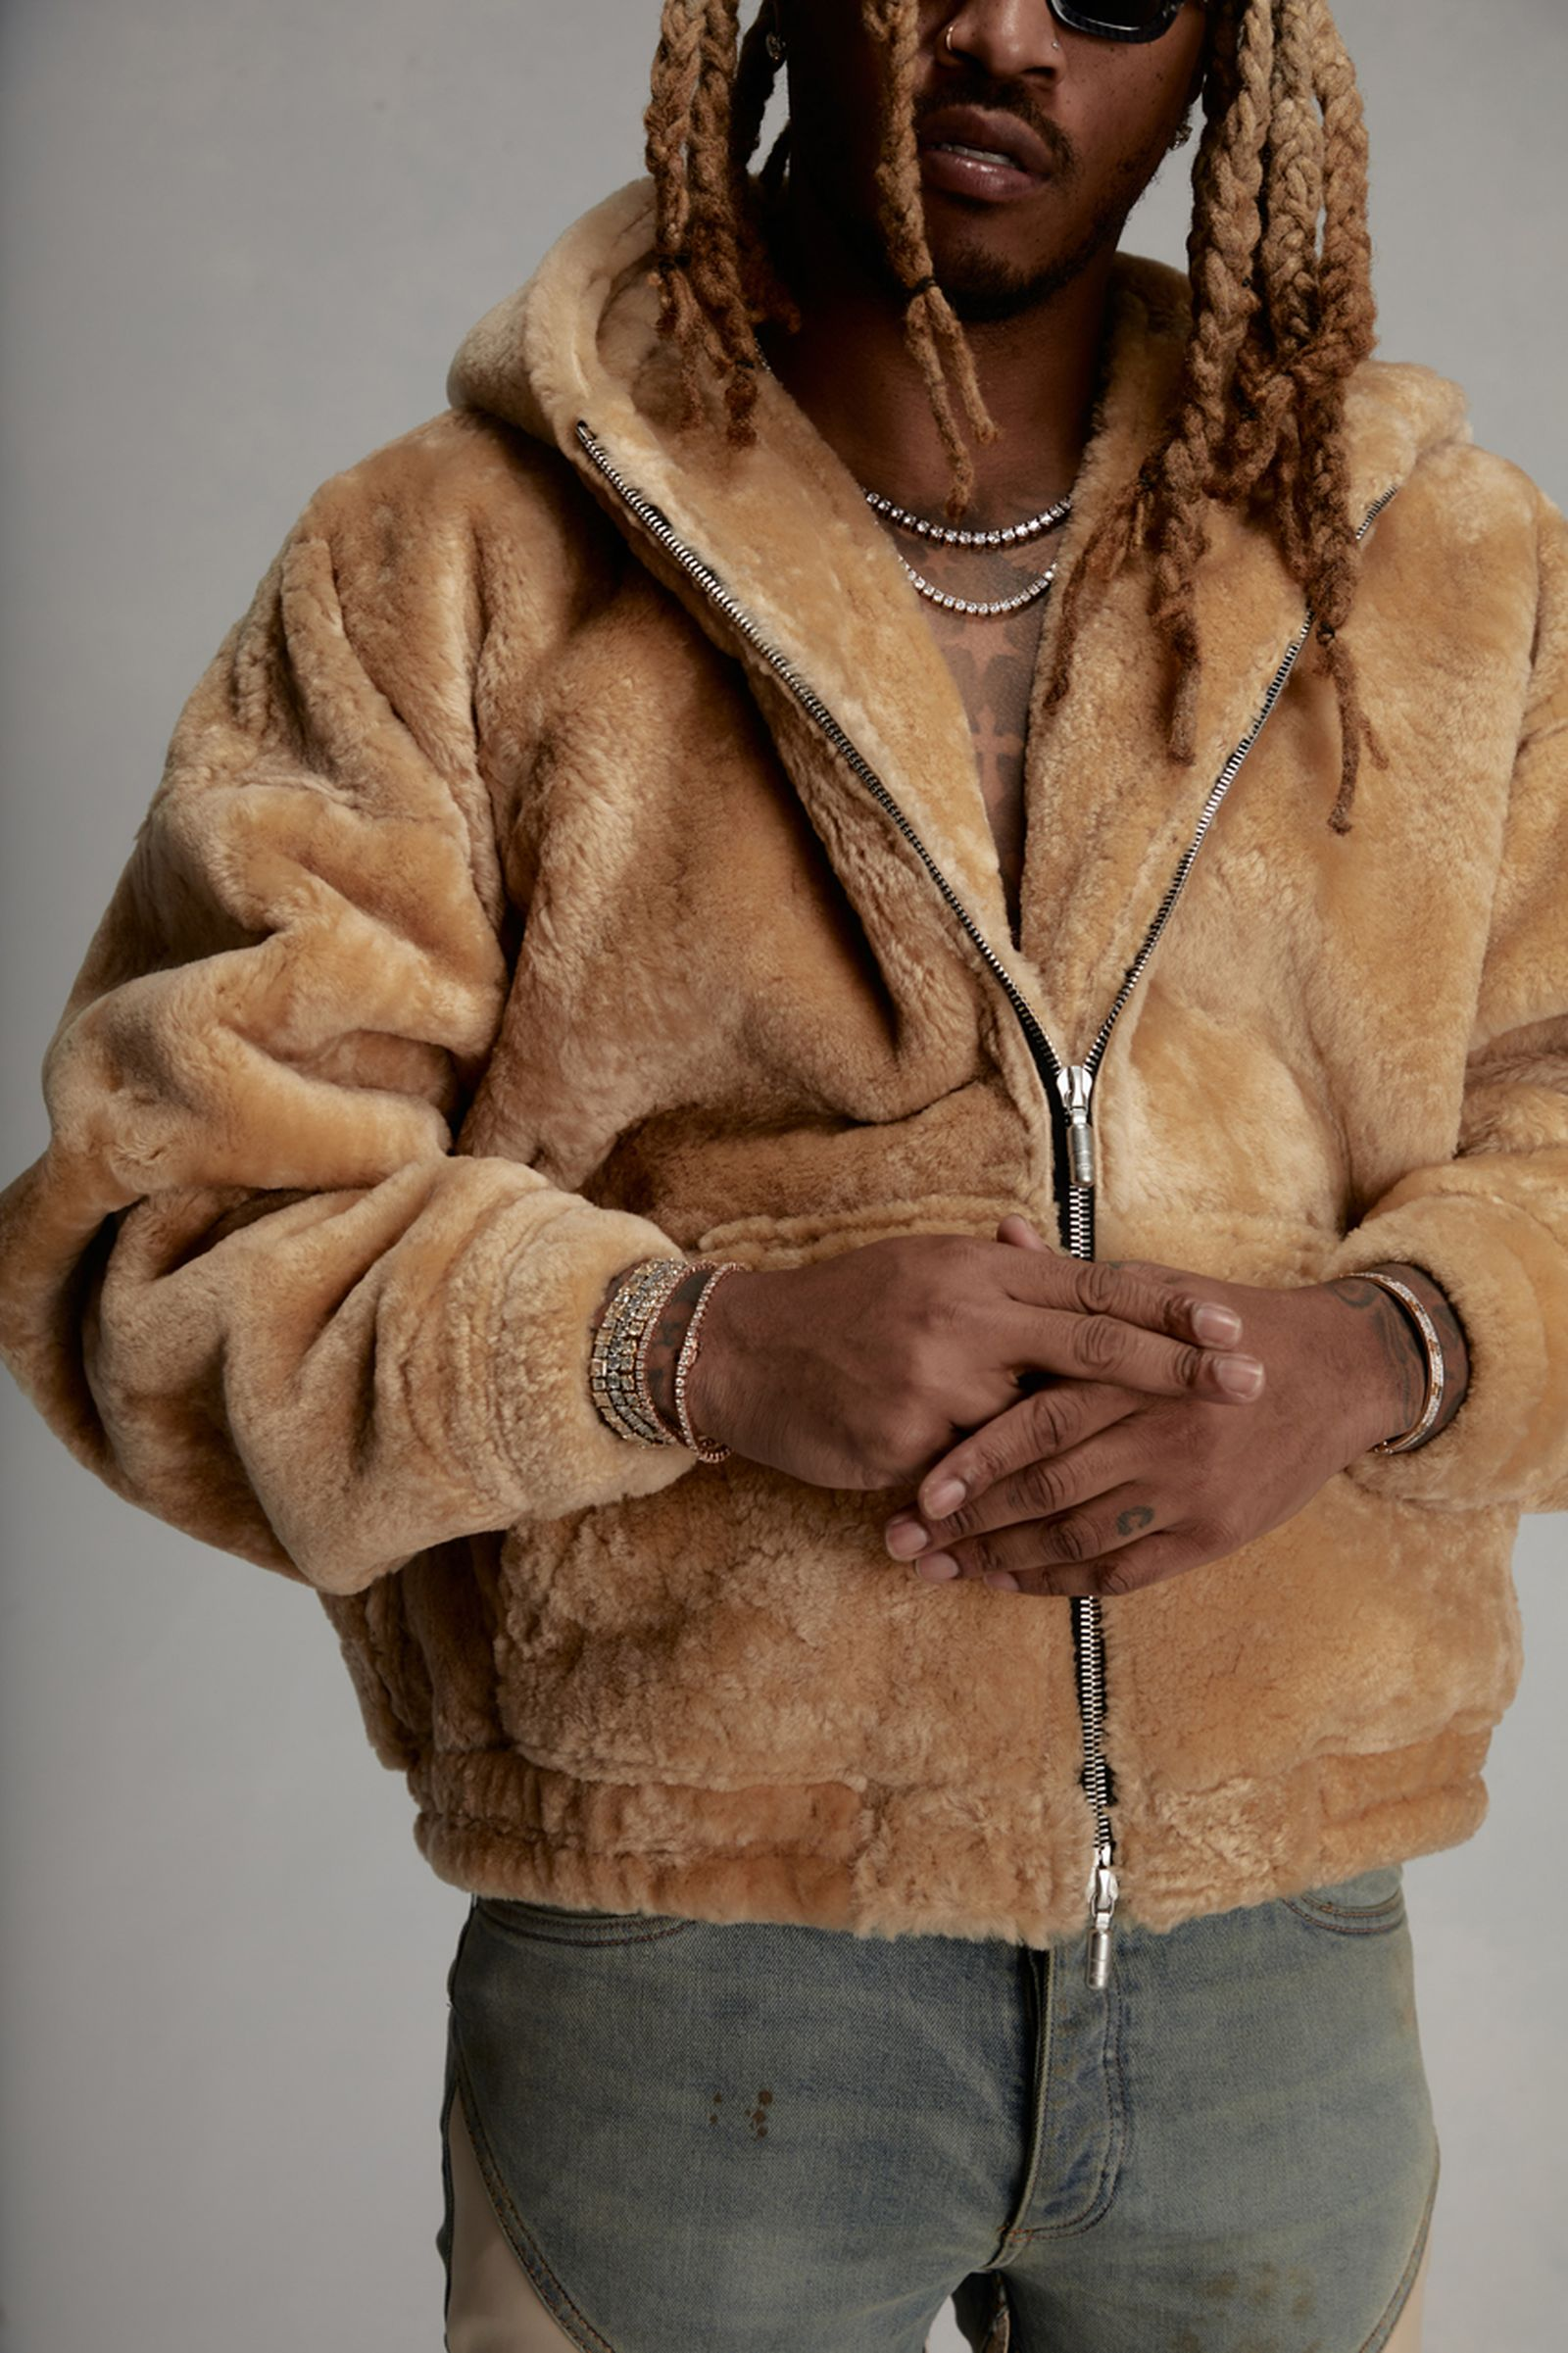 future-fronts-new-rhude-campaign-19